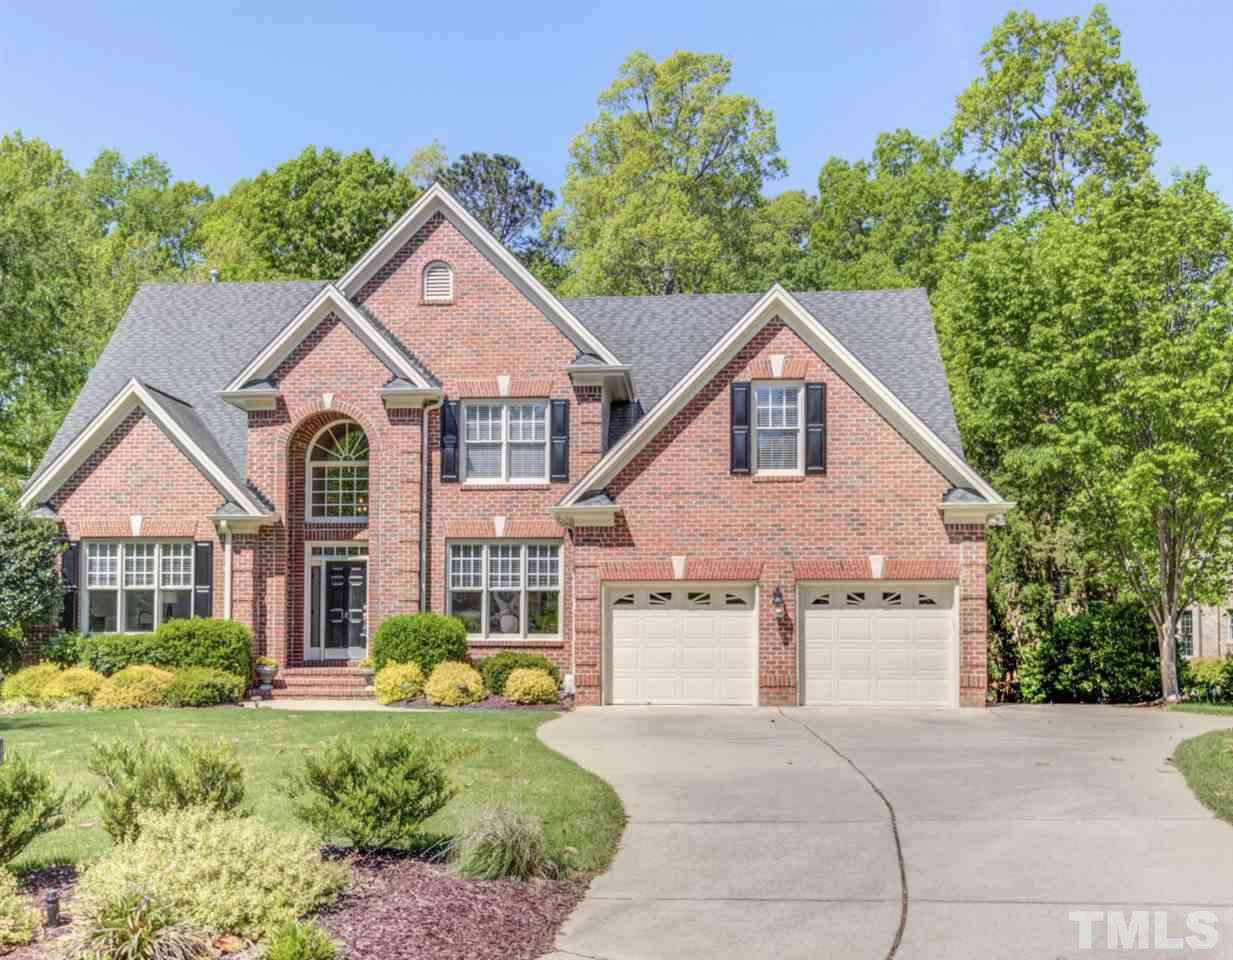 Stunning all brick executive home w/flowing floor plan. Newly painted interior w/over 4600 sq ft of luxury. Brightly lit spacious rooms, HDWDS & SEP formals. Chef's KIT w/Dacor built-in oven/microwave, 5 burner gas cooktop & island; opens to FAM RM w/stone surround FRPLC & breakfast RM. Main floor owner's suite w/WIC. Bonus, 3 BD/2BA & FIN STG on 2nd floor. Private back lawn, deck & patio overlooks mature trees. Walk-out BSMT w/golf cart garage. Convenient commute to shopping, grocery, RTP & more!